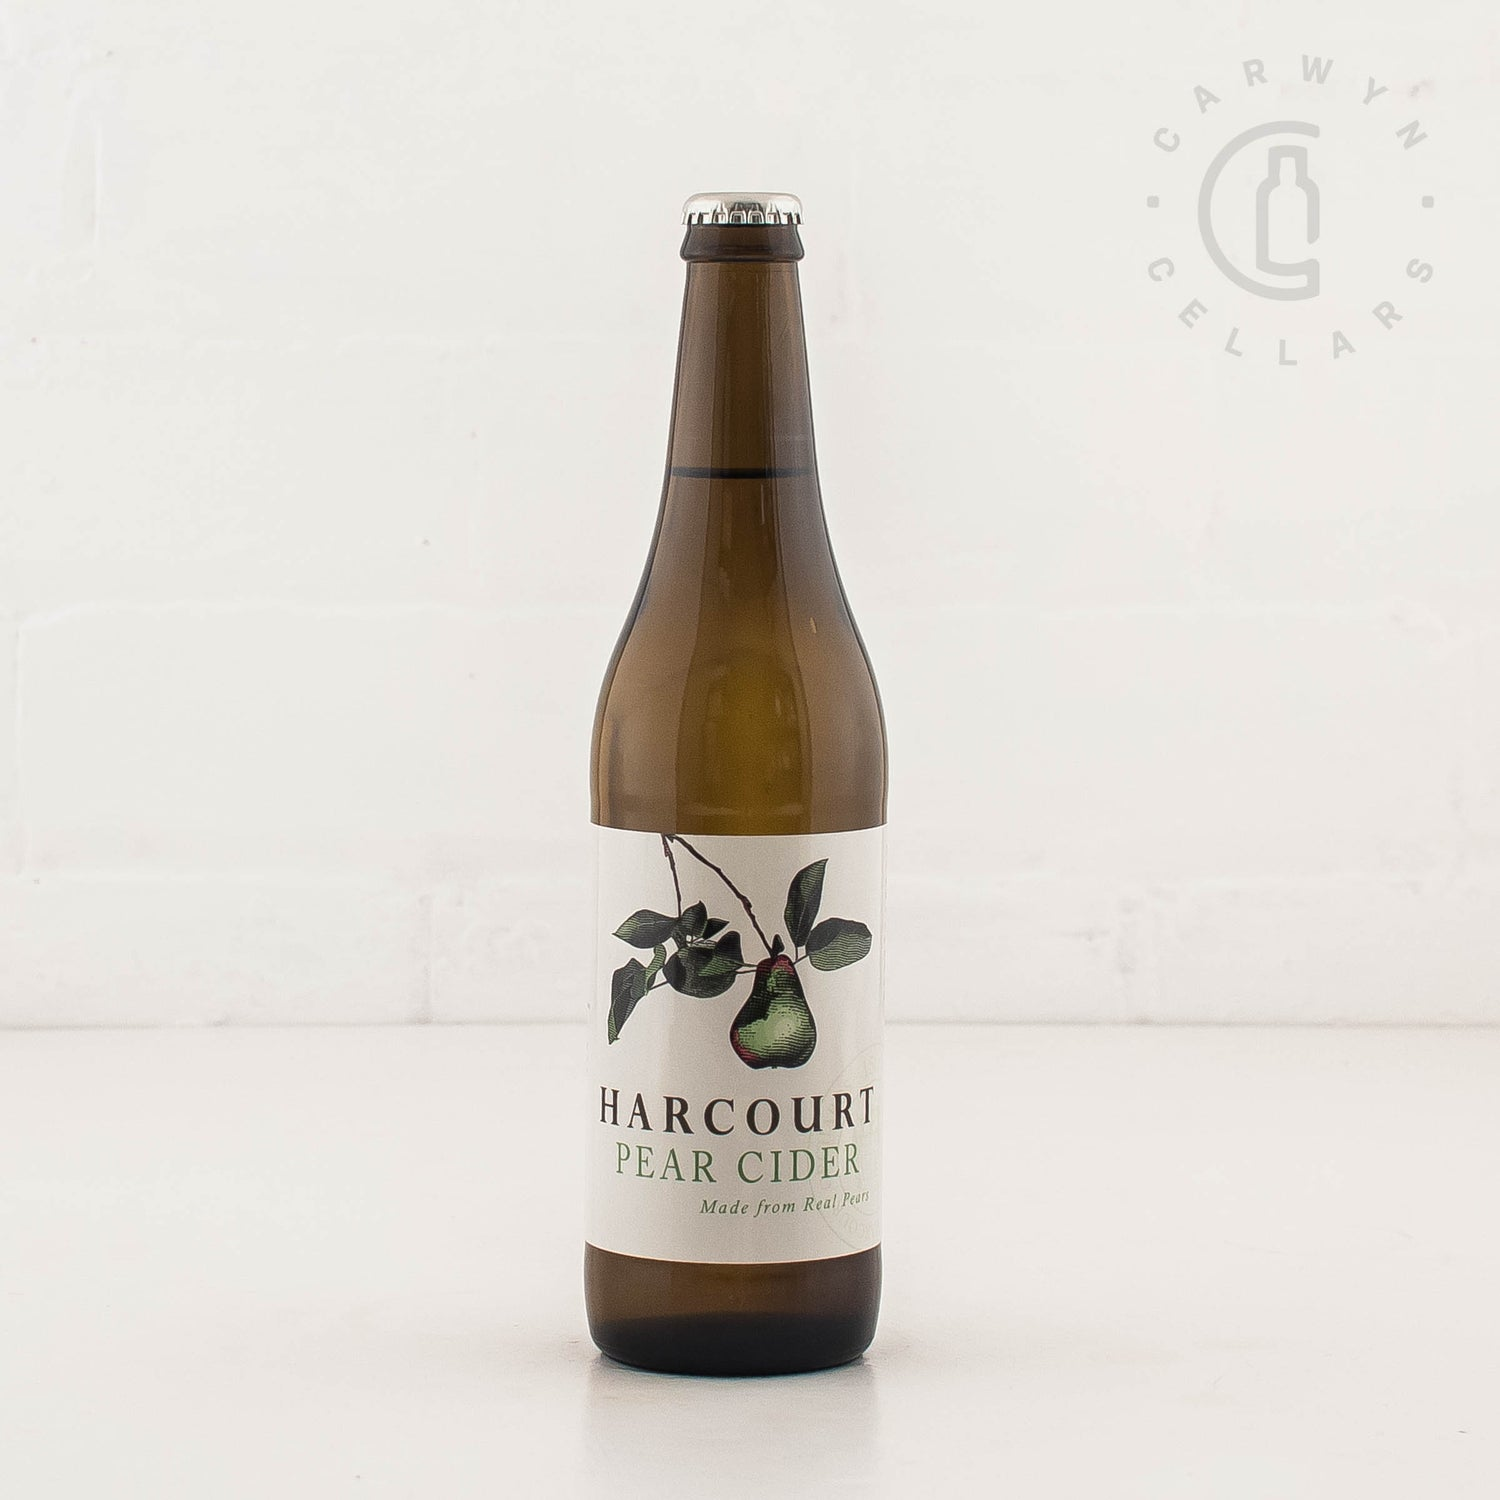 Harcourt Pear Cider